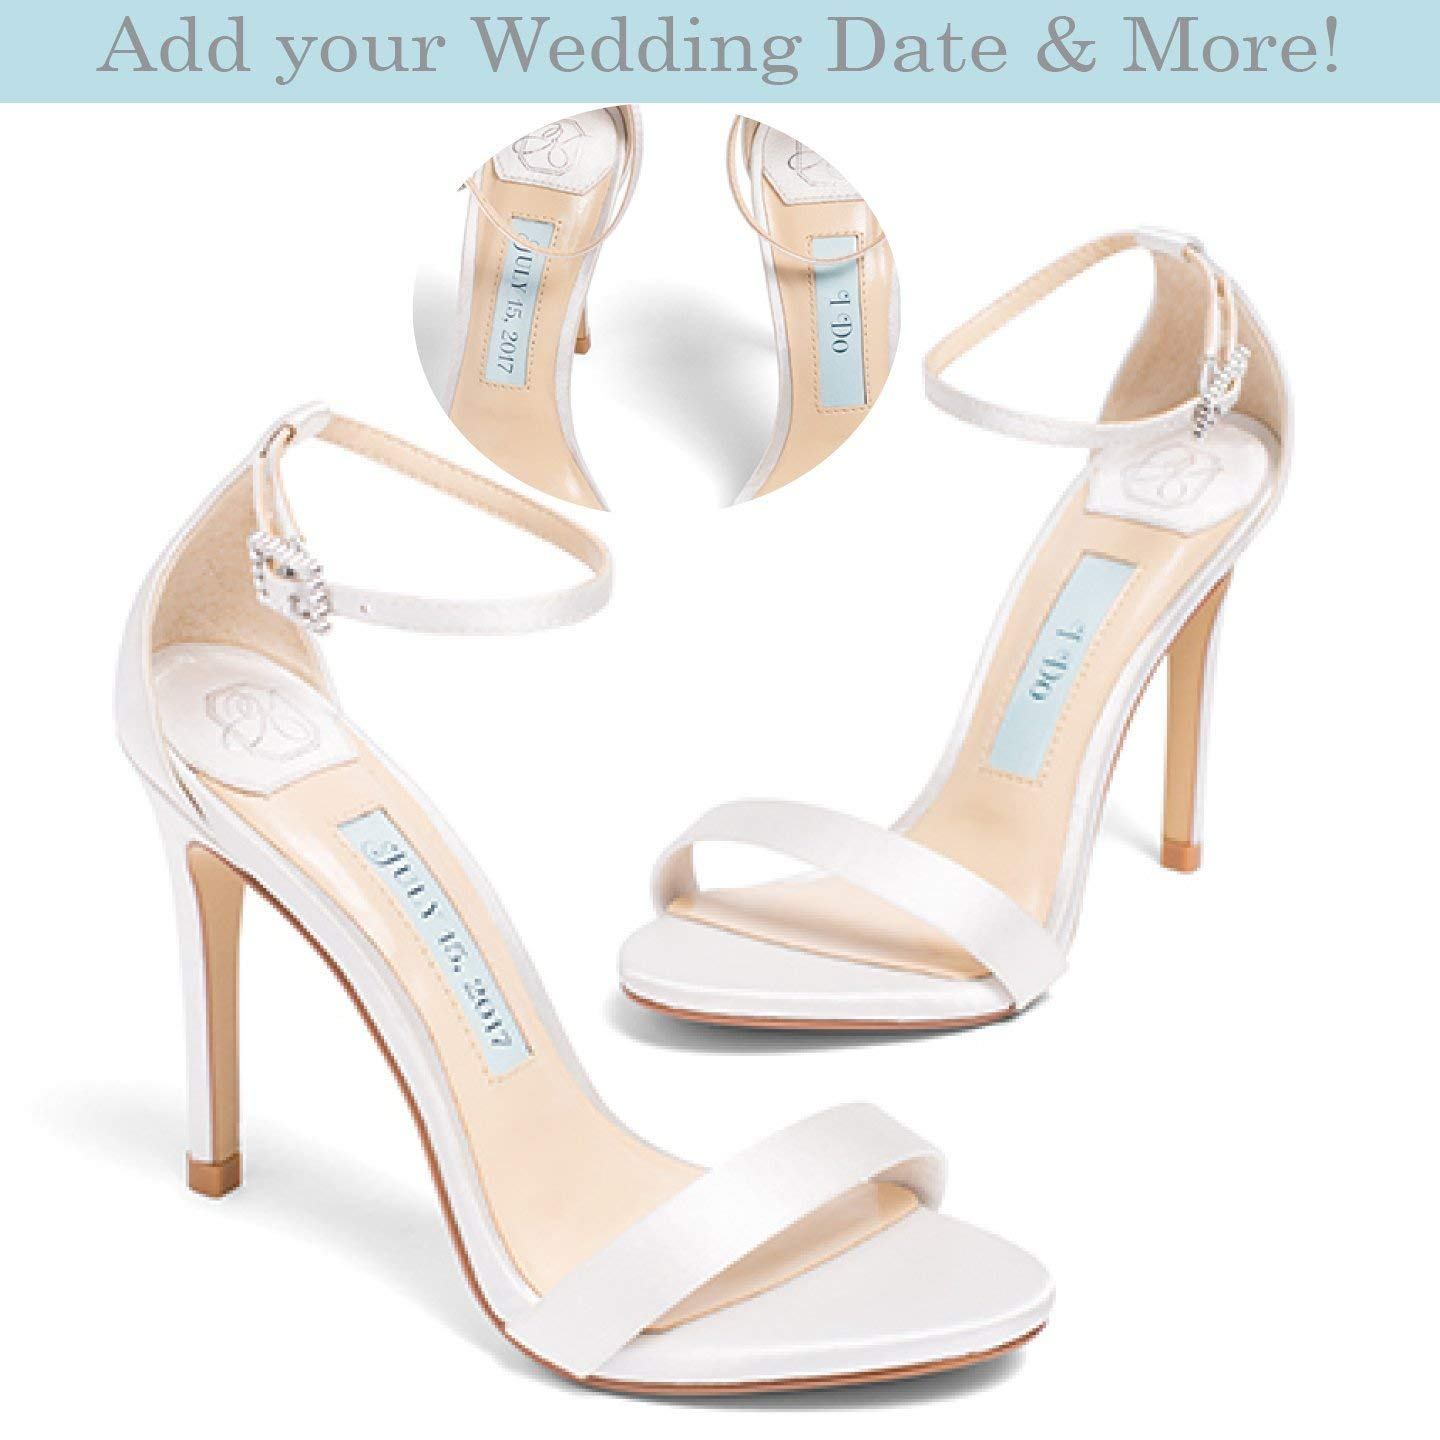 "Wedding Shoes -""Patent-Pending"" personalization - Ivory satin wedding sandal - Style Samantha"